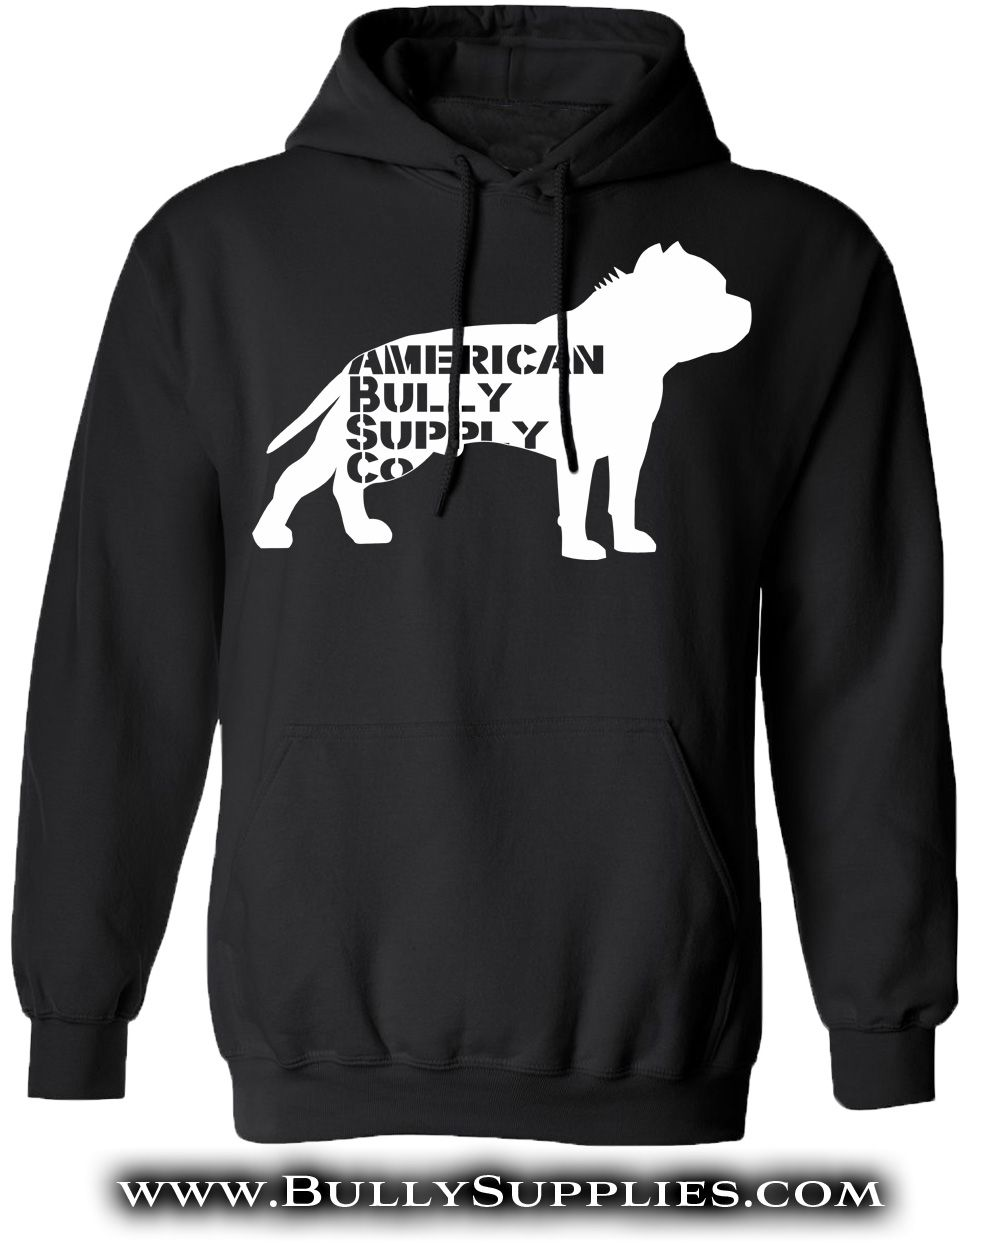 Shirt design supplies - American Bully Supply Co Logo Hoody Available In 6 Colors Sizes Sm Thru 5x